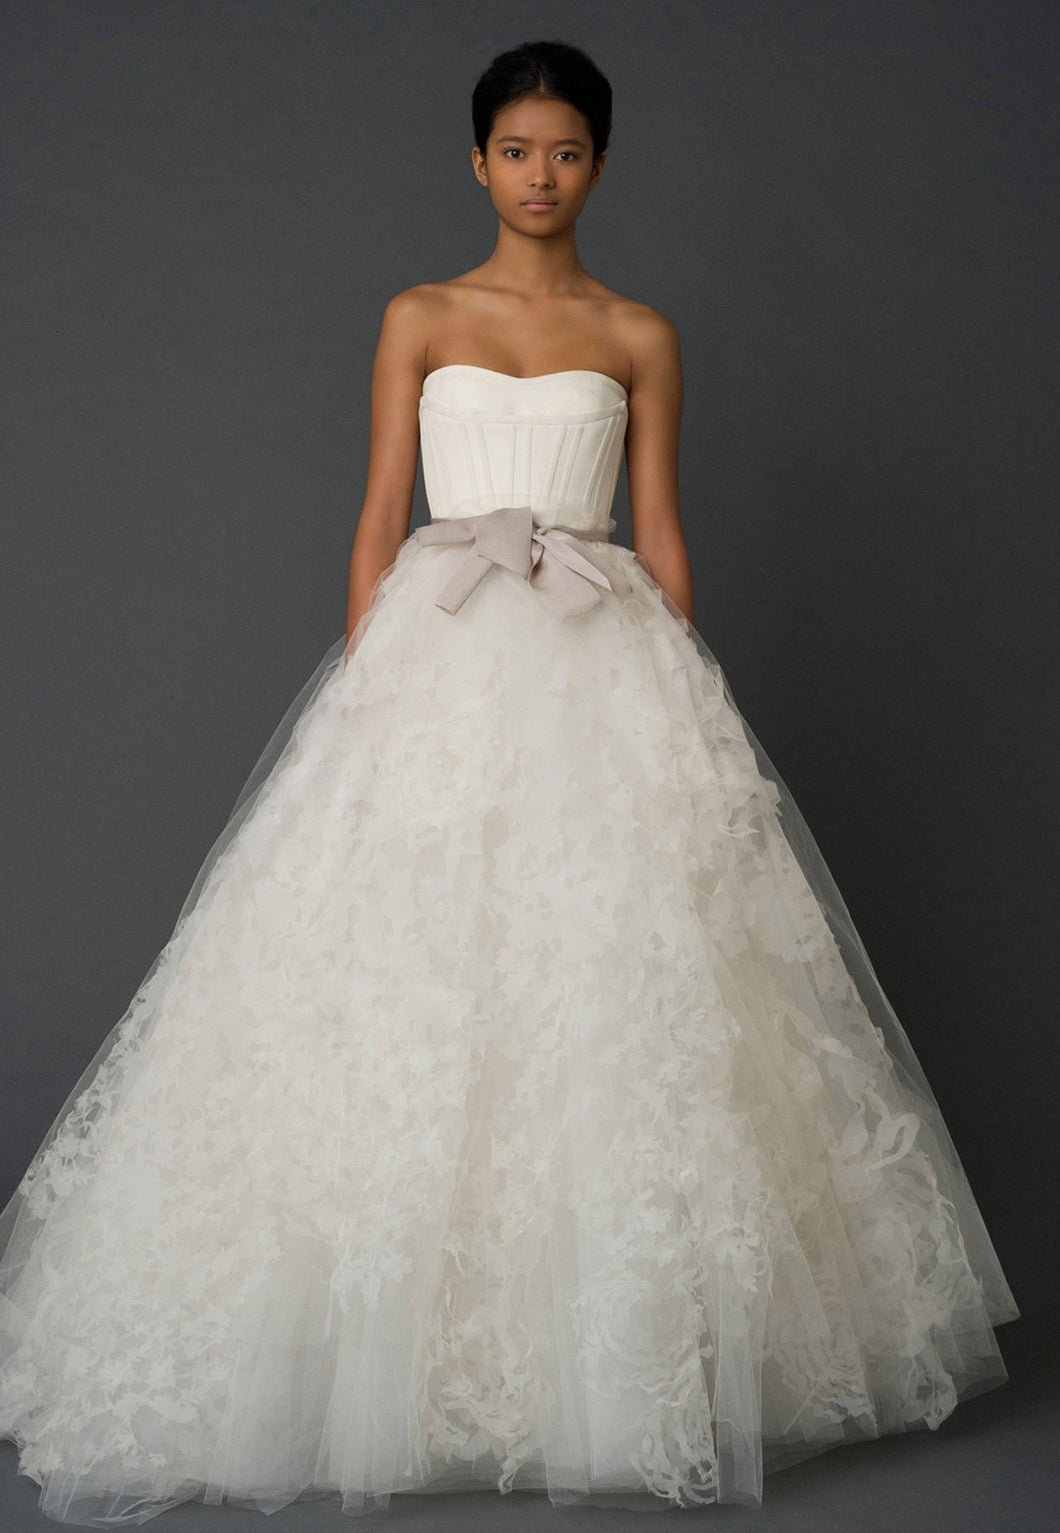 Vera Wang 'Hannah' - Vera Wang - Nearly Newlywed Bridal Boutique - 1